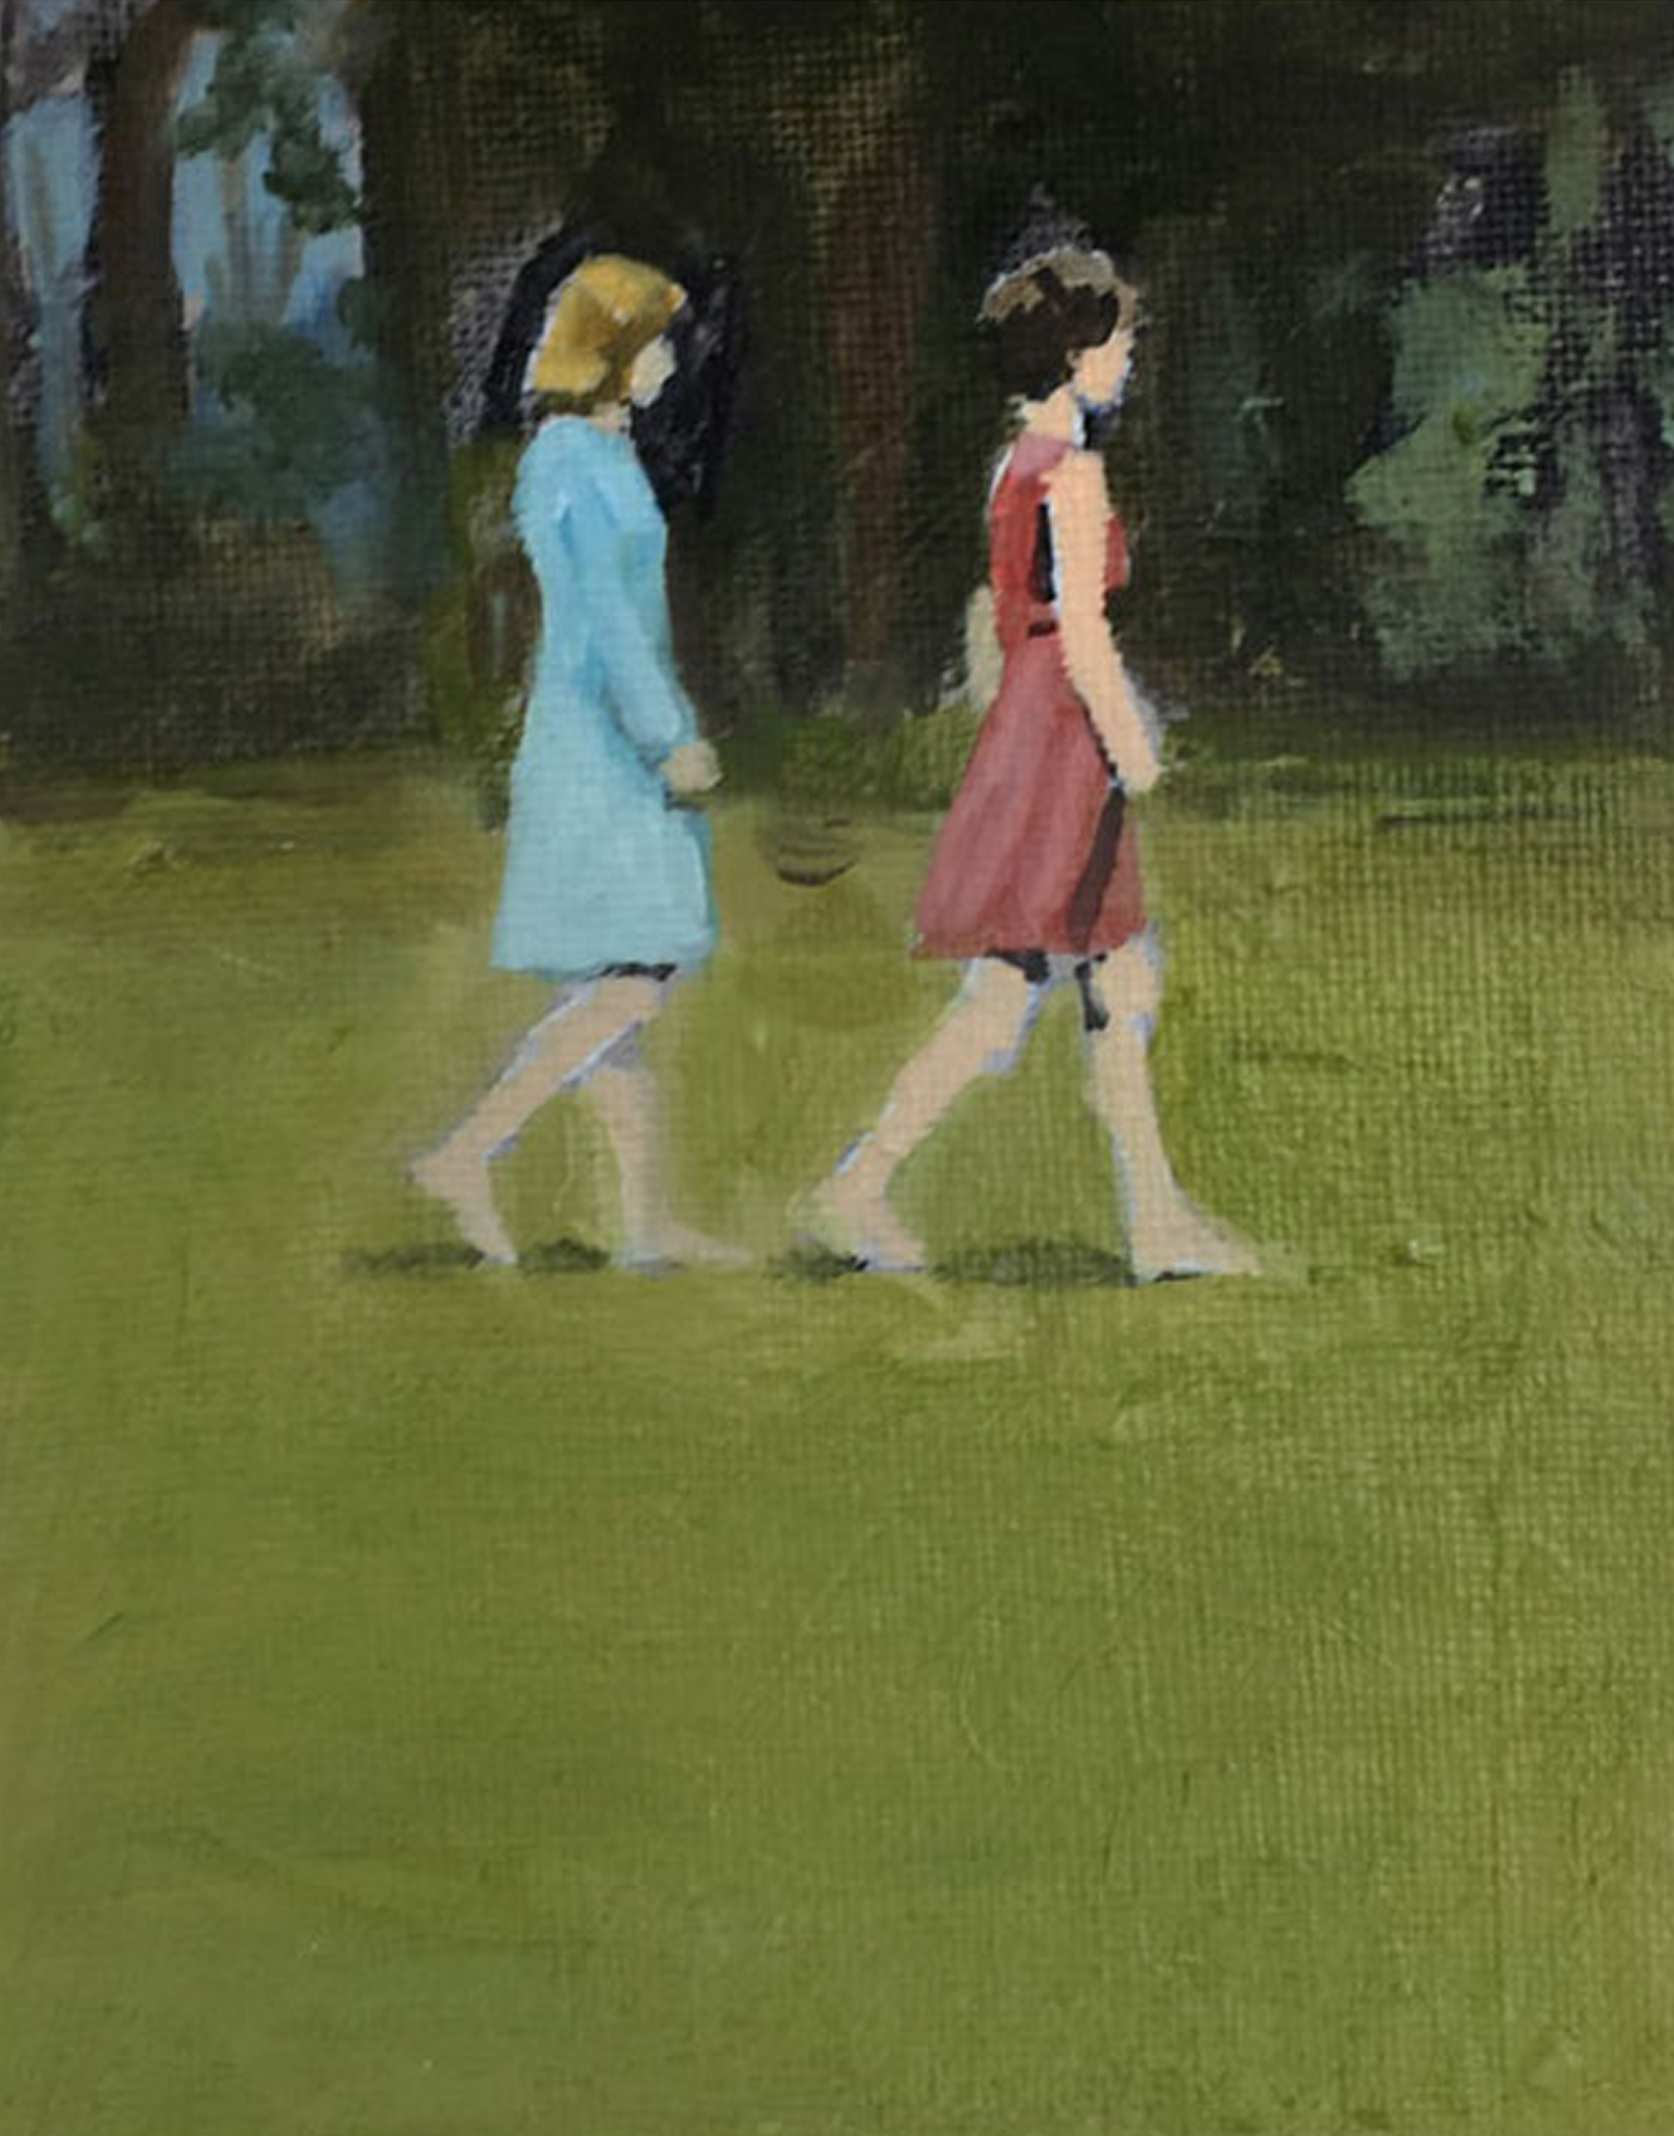 Artist: David Storey  Title: Two Women Walking  Size: 10 x 13 cm  Medium: Egg tempera and oil on panel  SOLD